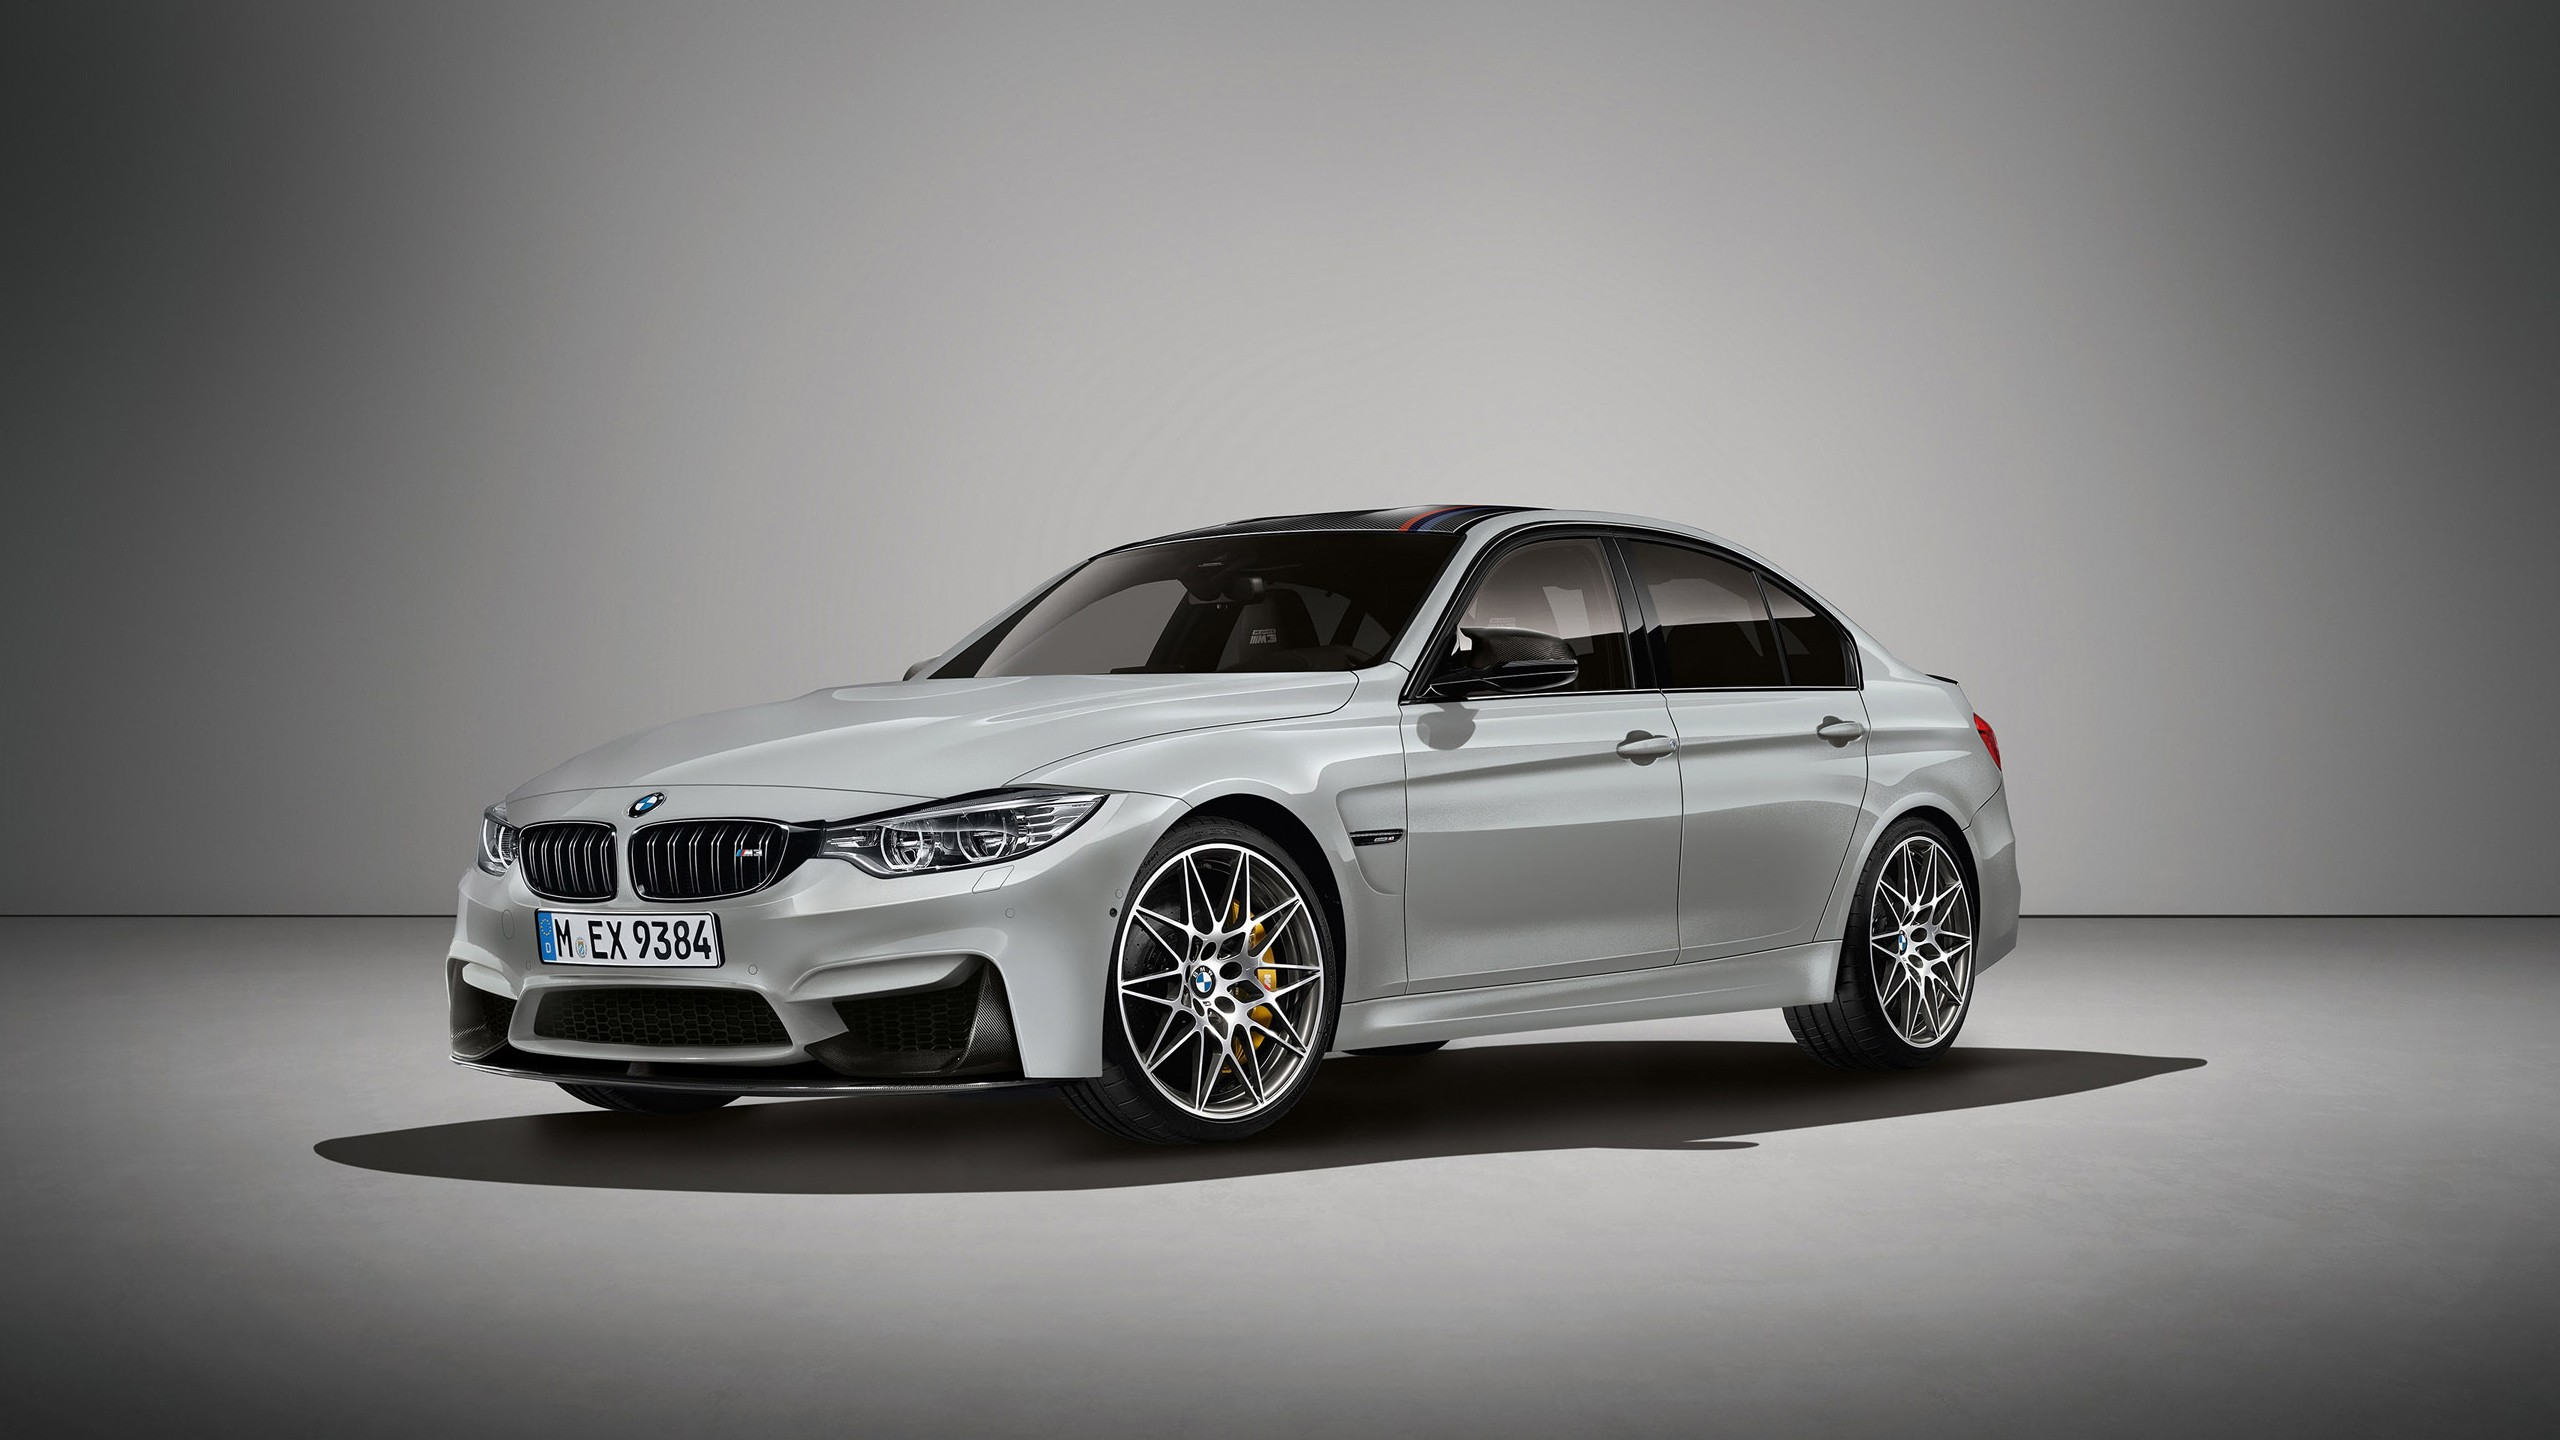 2016 Bmw M3 30 Jahre Special Edition Wallpaper Hd Car